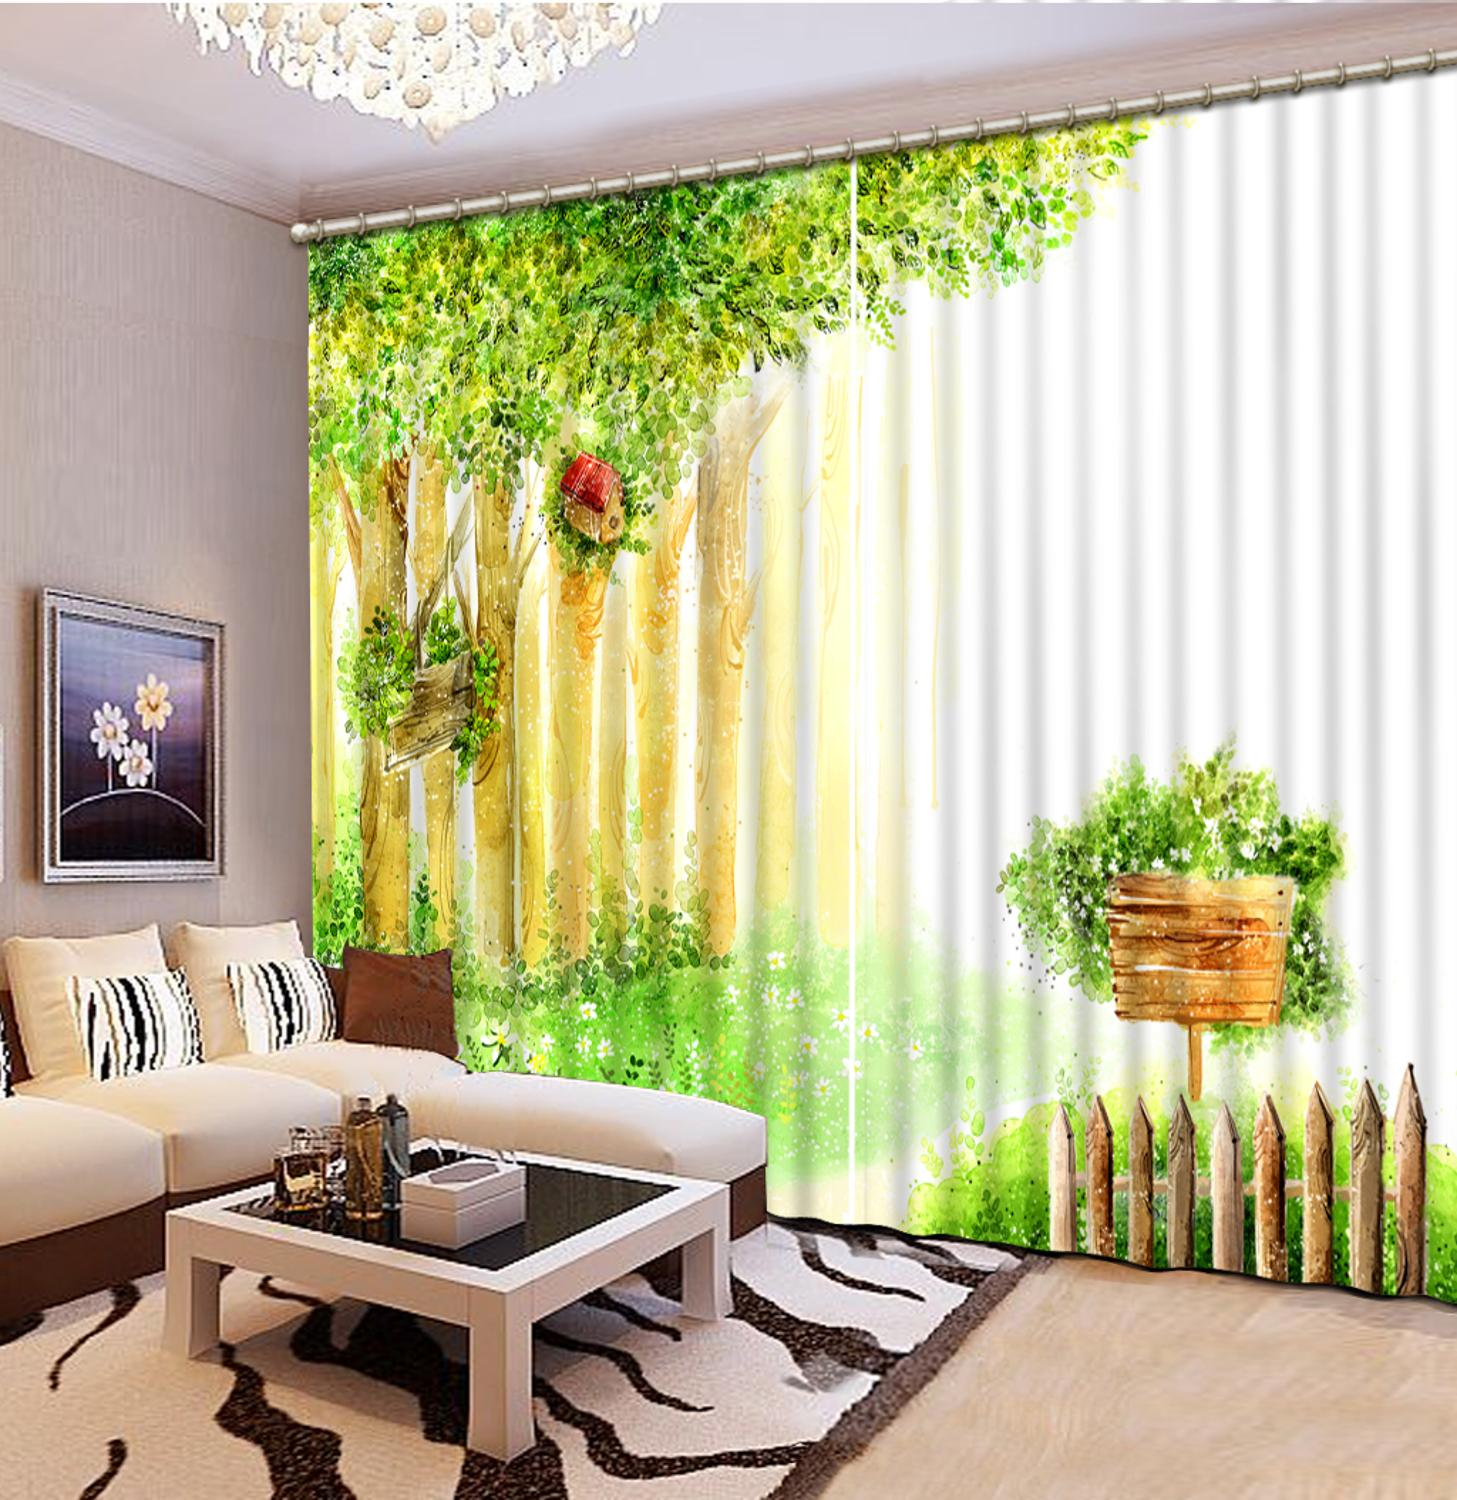 home curtains customize Landscape painting bedroom living room windows printing blackout curtainshome curtains customize Landscape painting bedroom living room windows printing blackout curtains